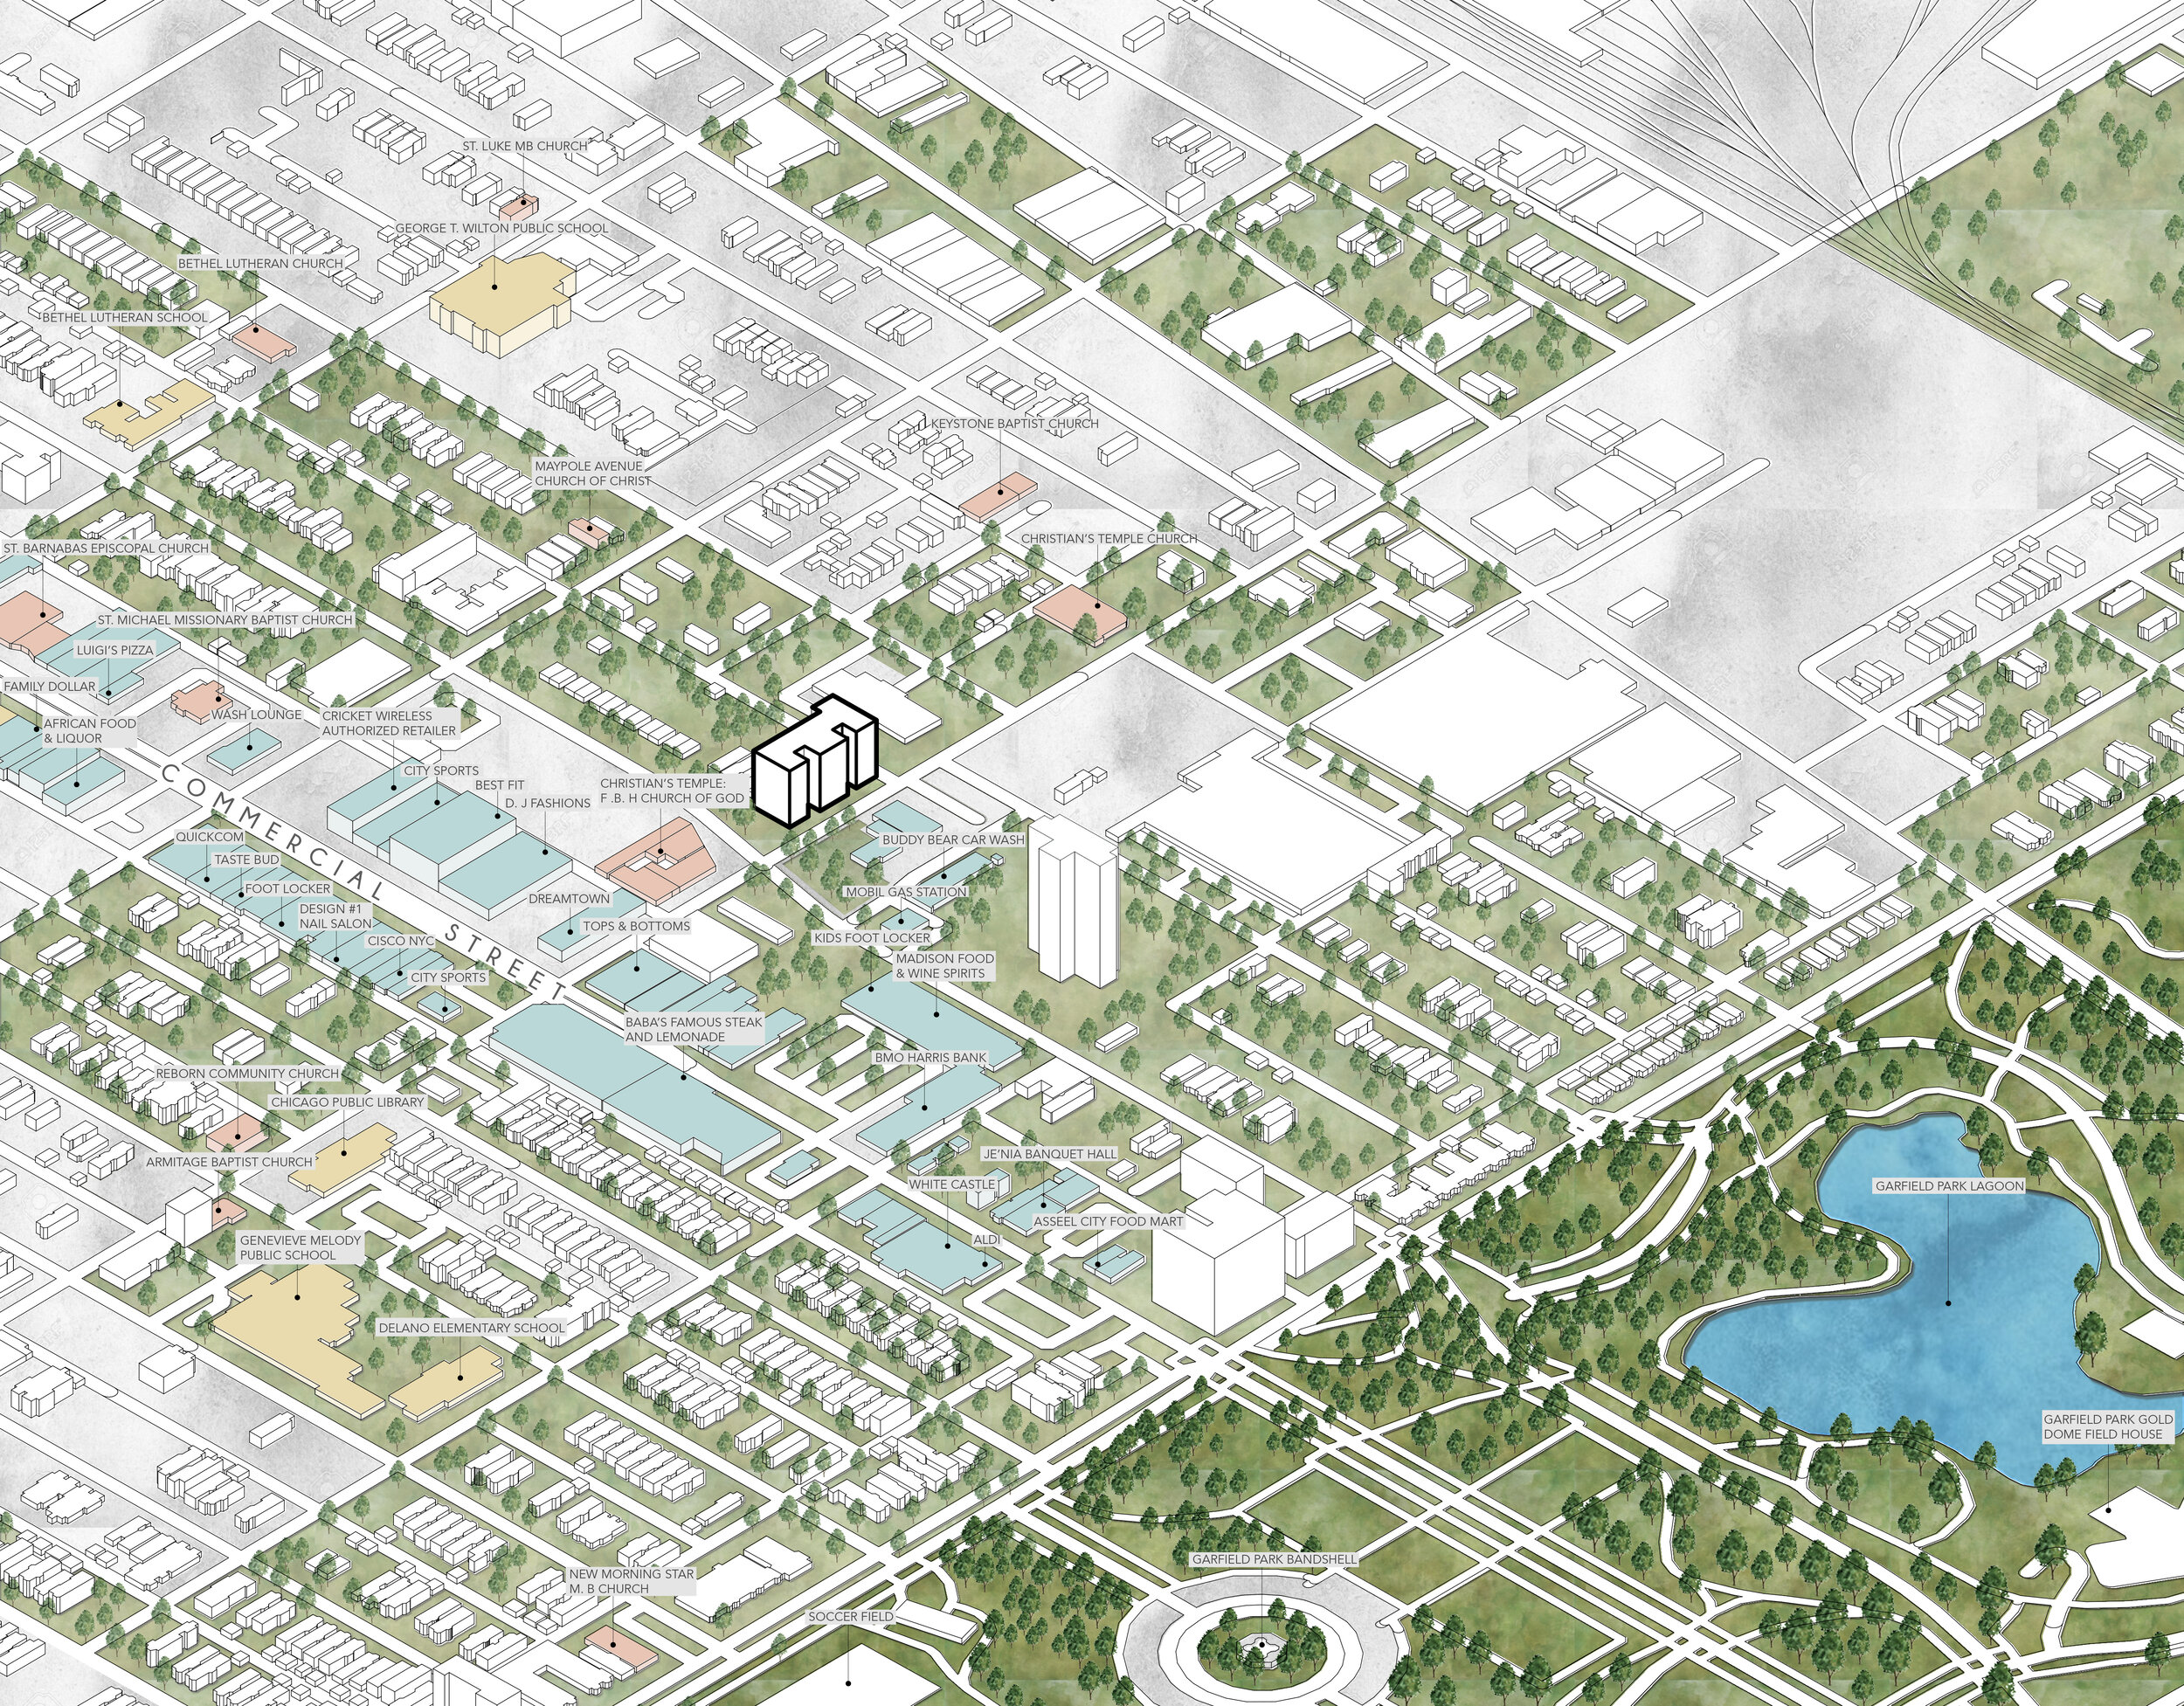 Master Planning diagram showing proximity to Garfield Park, as well as retail and educational buildings around the site